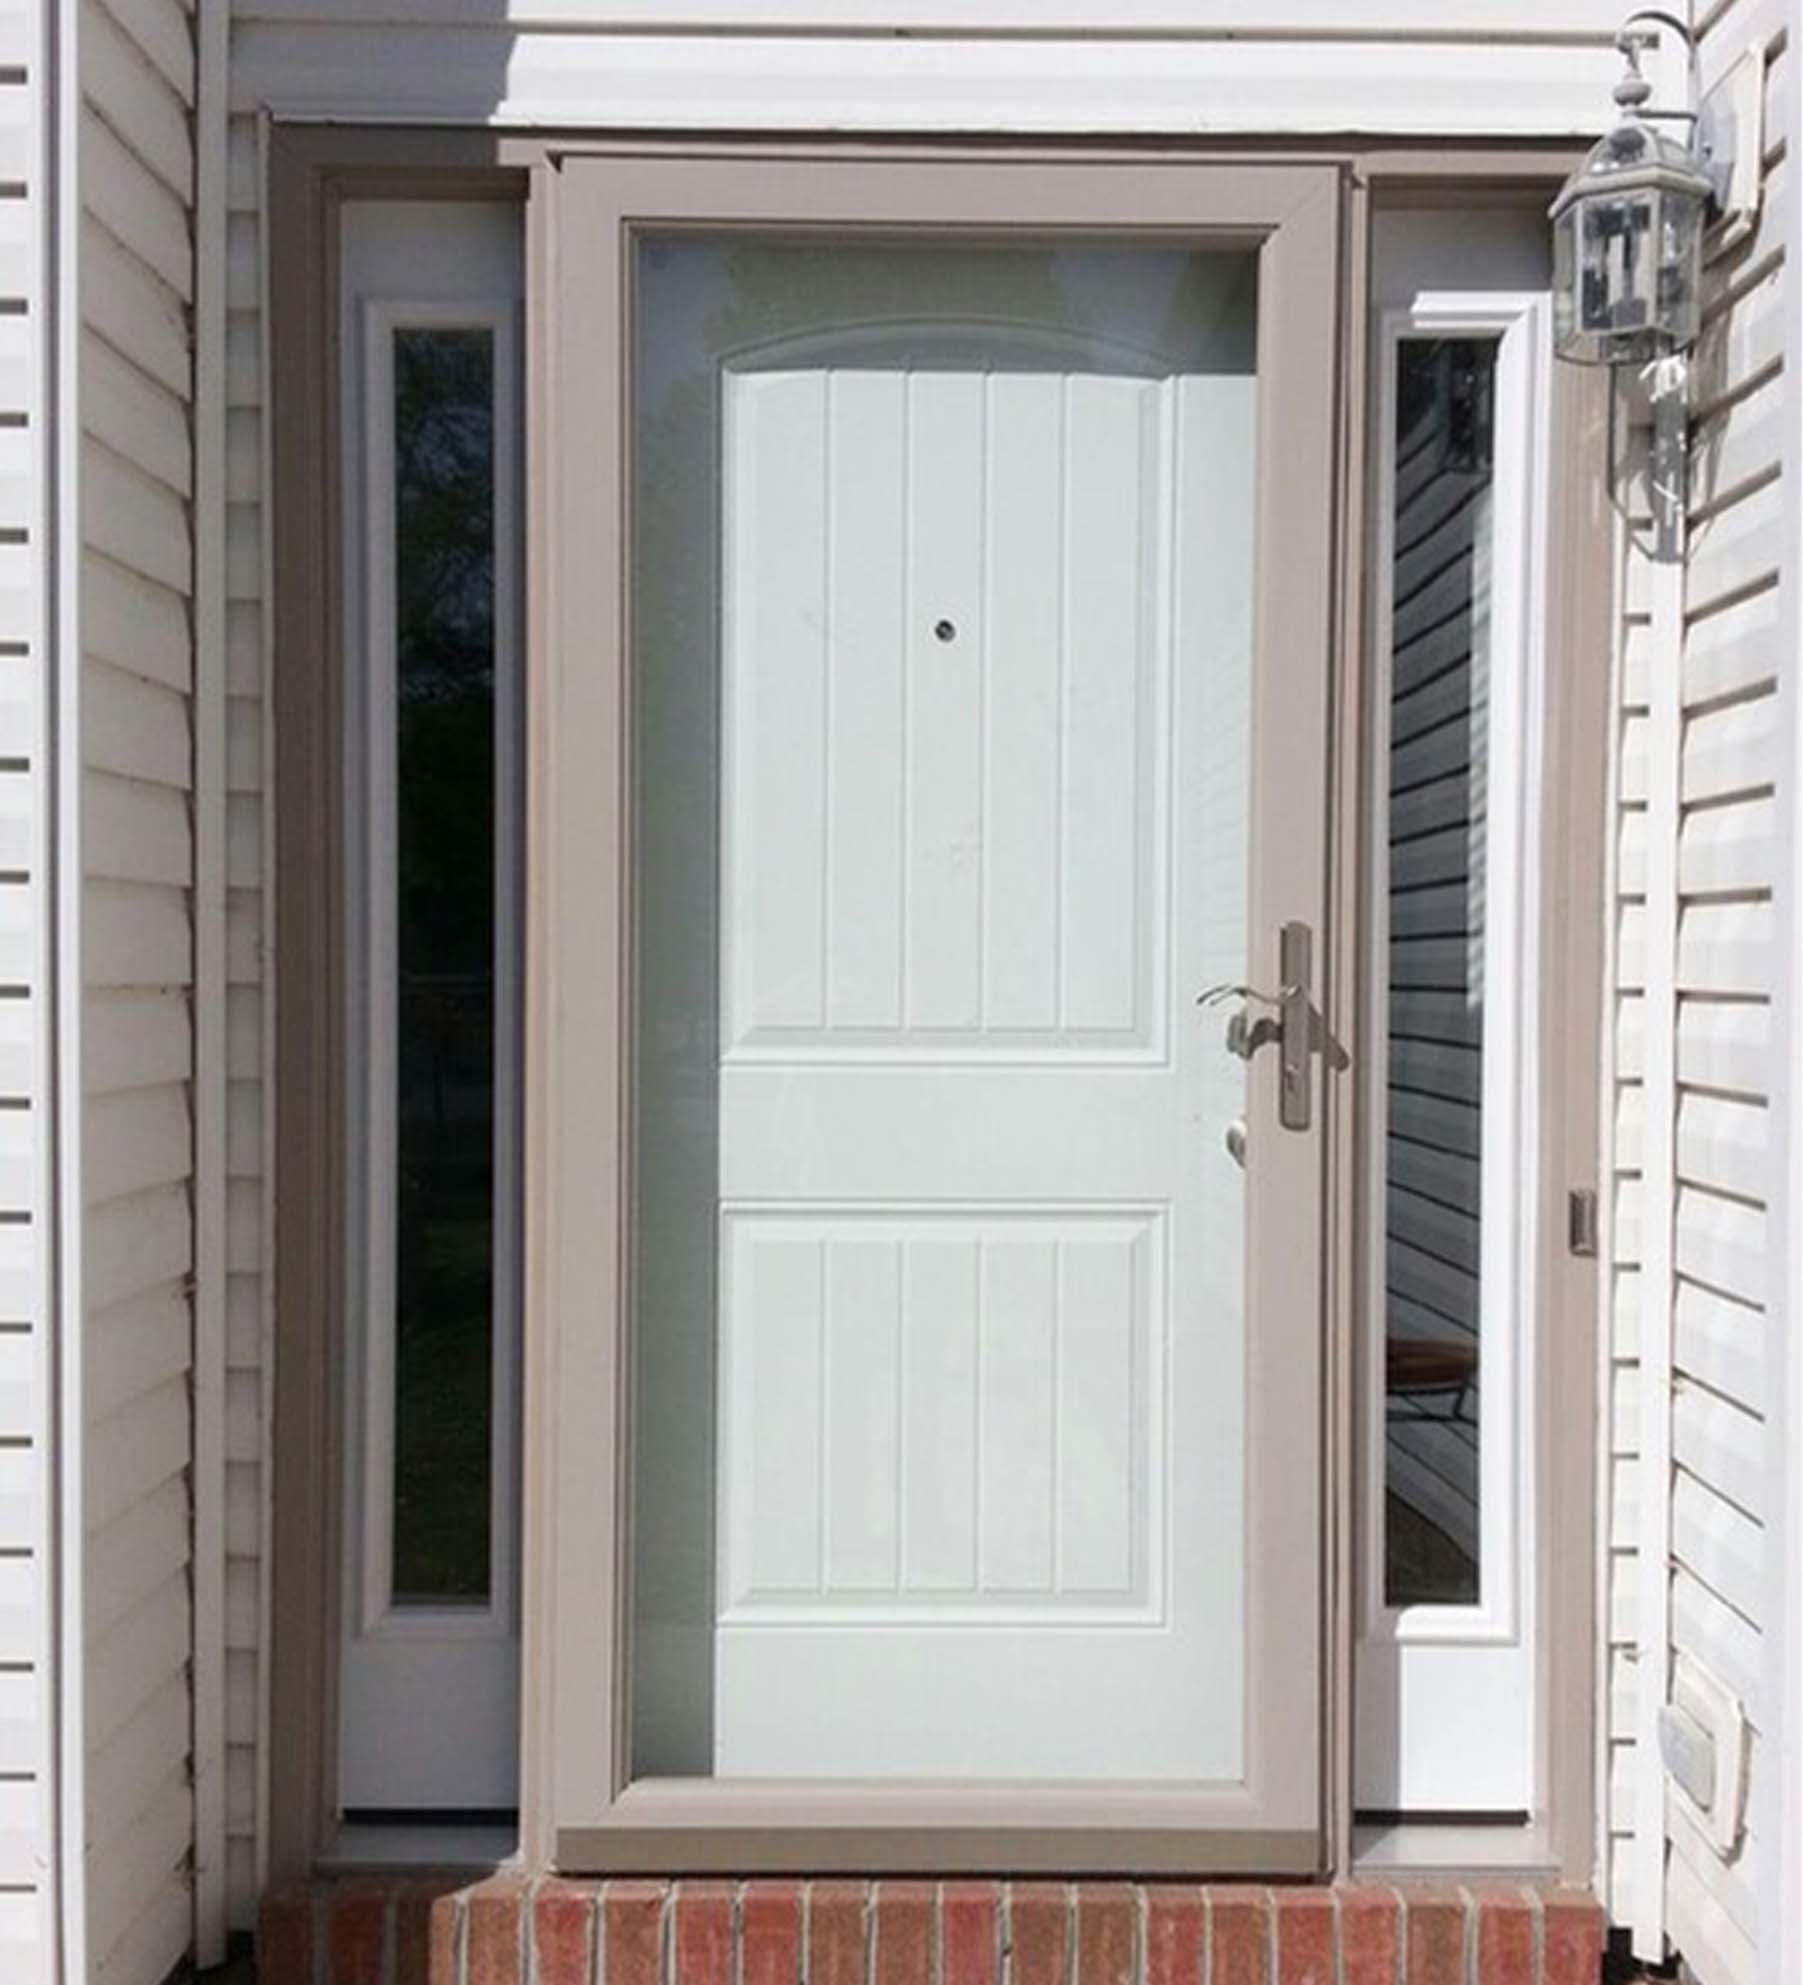 INSTALLED Larson Classic Full View Storm Door w/ Hardware STARTING      $547.99